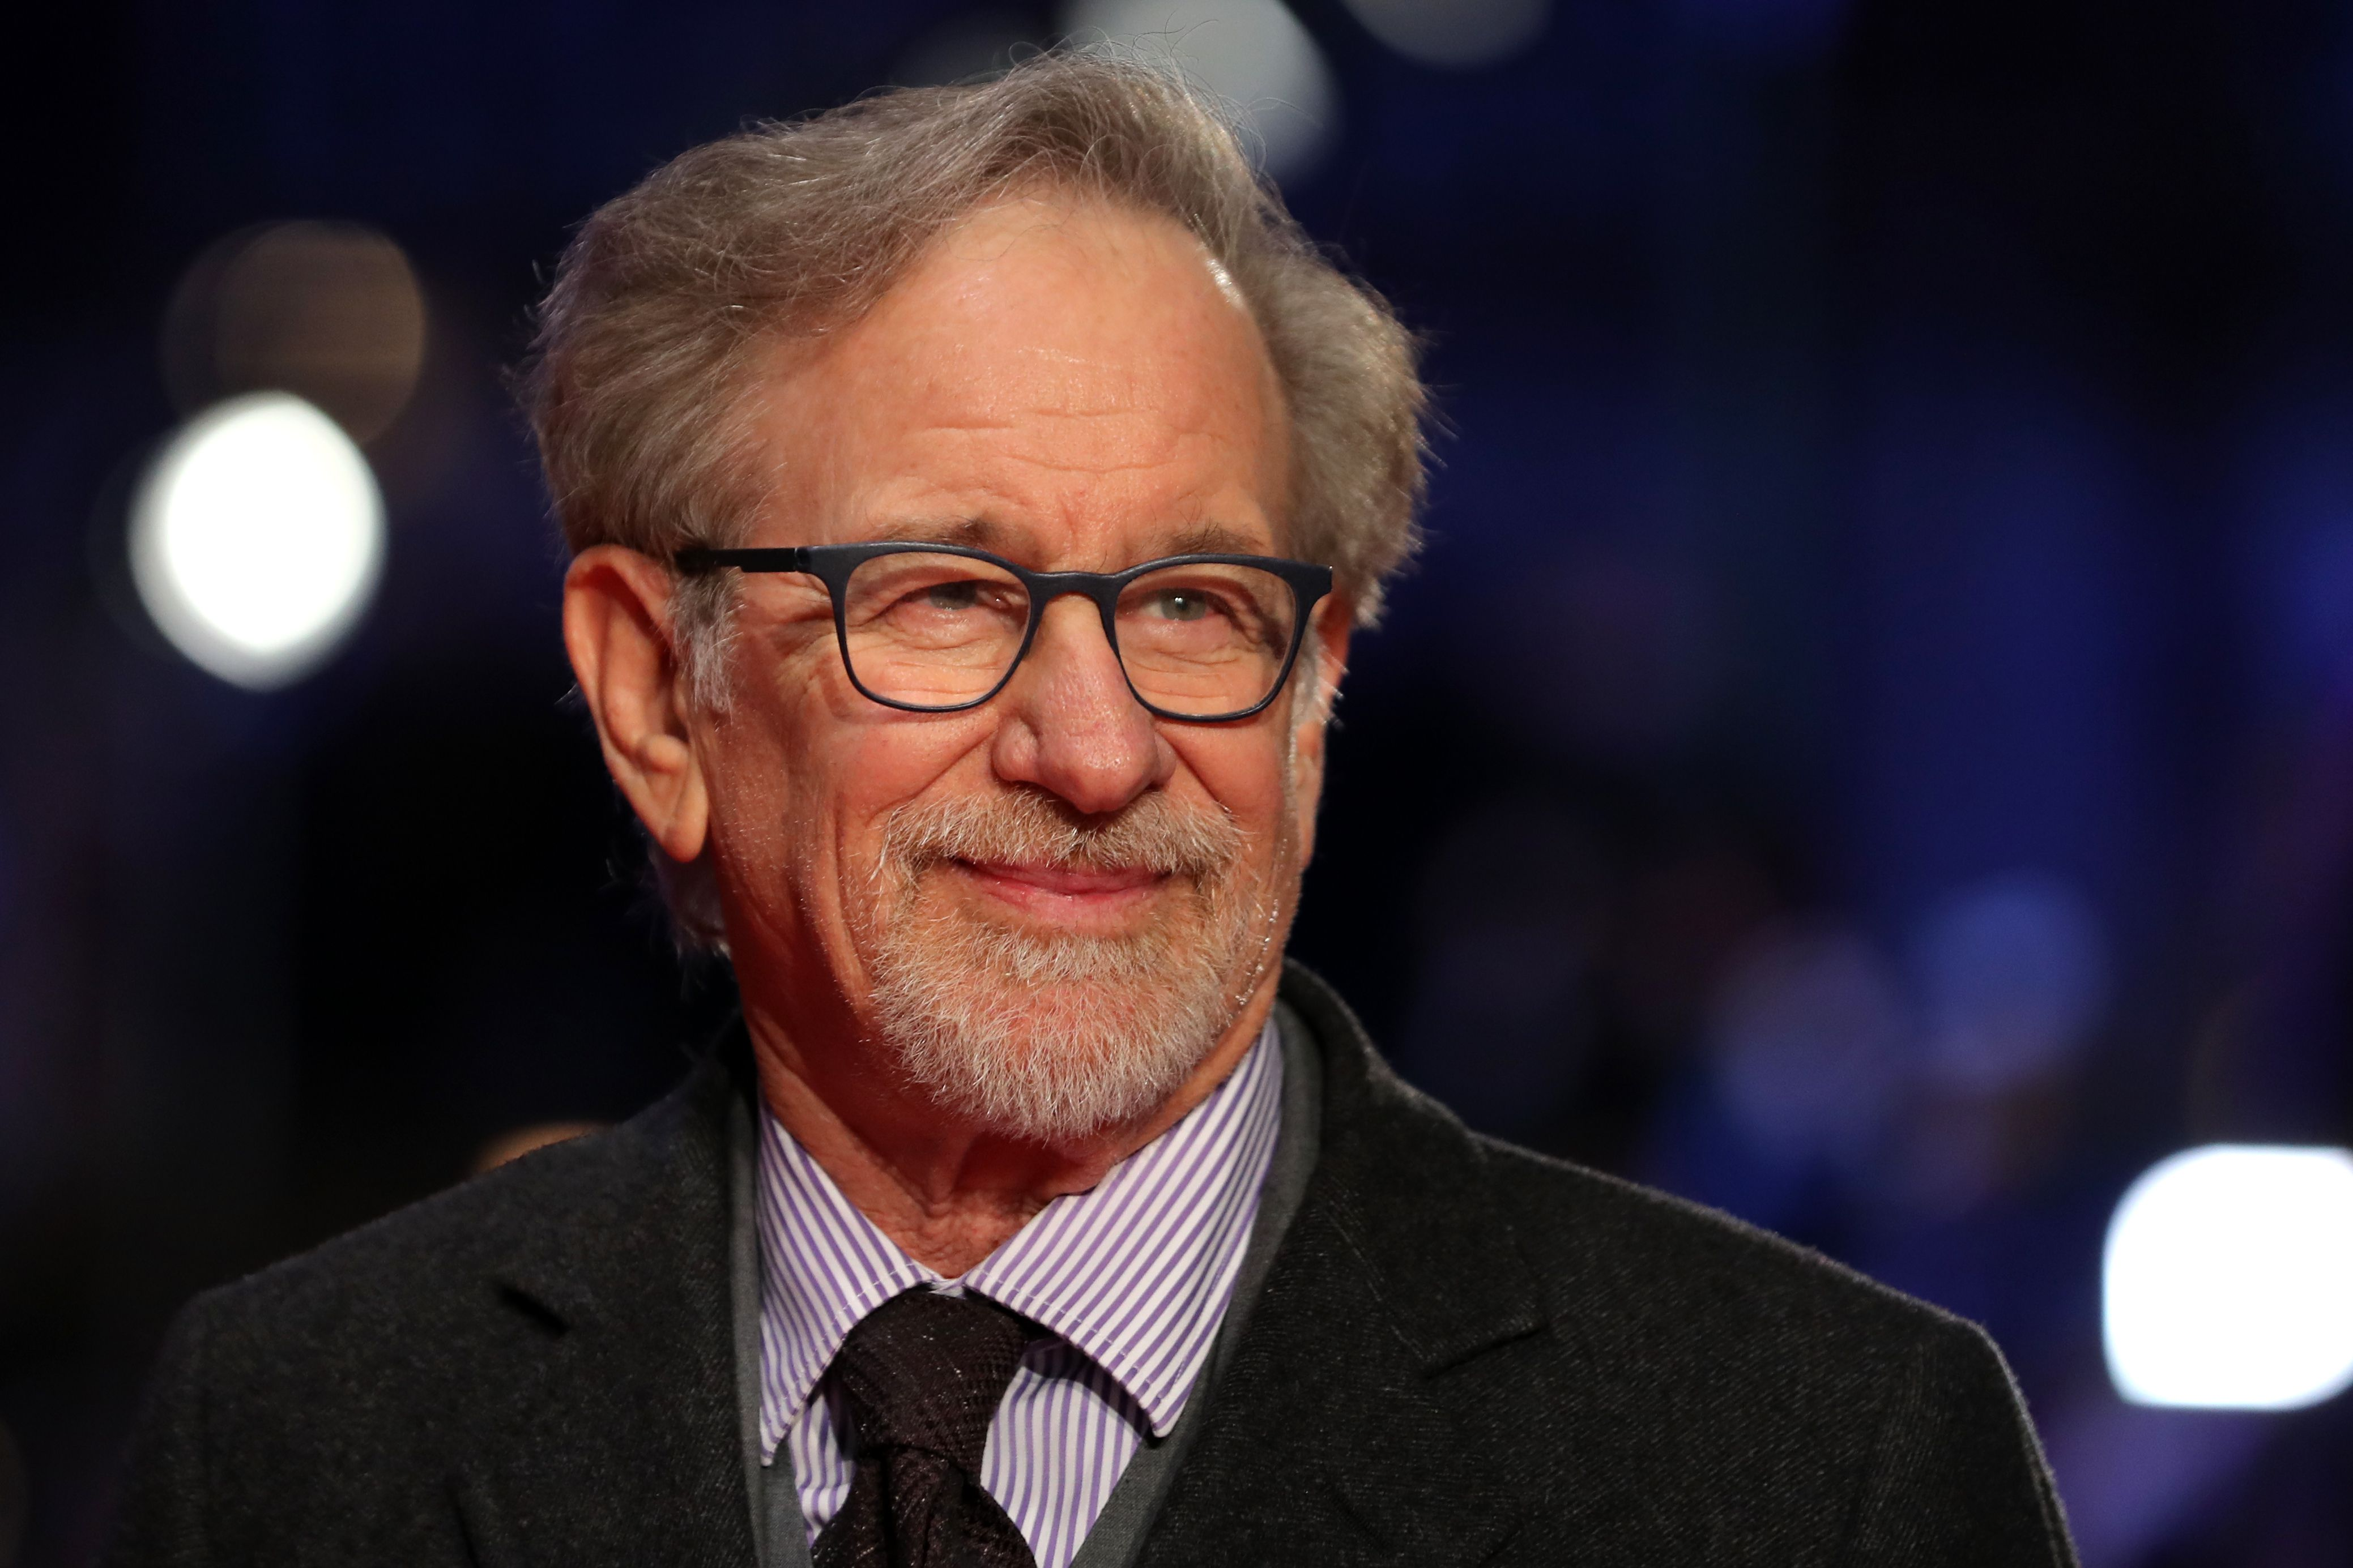 """(FILES) In this file photo taken on January 10, 2018 US film director Steven Spielberg poses on the red carpet on arrival for the European Premiere of his film, The Post in London. It's one of the most beloved movies in musical cinema and now Steven Spielberg is giving """"West Side Story"""" a makeover -- except this time, he is recruiting Latino talent to play the lead roles. The original film version of Leonard Bernstein's musical -- Shakespeare's """"Romeo and Juliet"""" reimagined in the world of warring New York gangs -- came out in 1961, winning 10 Oscars and captivating a generation on the cusp of huge societal change.For the remake, Spielberg is teaming up with playwright and screenwriter Tony Kushner, who has previously collaborated with the three-time Oscar-winning billionaire director on """"Lincoln"""" (2012) and """"Munich"""" (2005). / AFP PHOTO / Daniel LEAL-OLIVAS"""